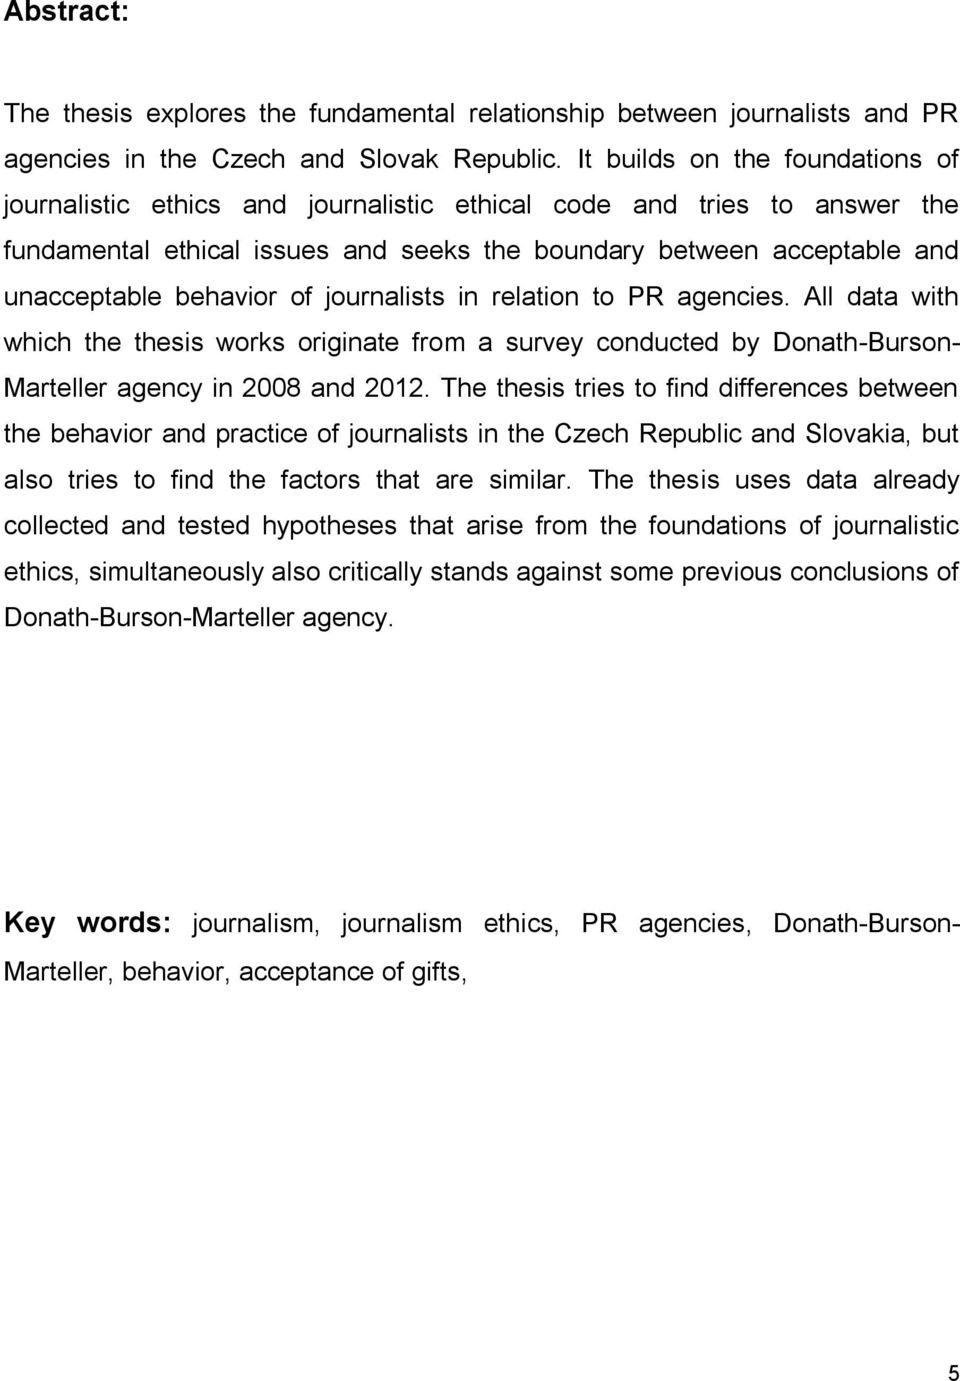 behavior of journalists in relation to PR agencies. All data with which the thesis works originate from a survey conducted by Donath-Burson- Marteller agency in 2008 and 2012.